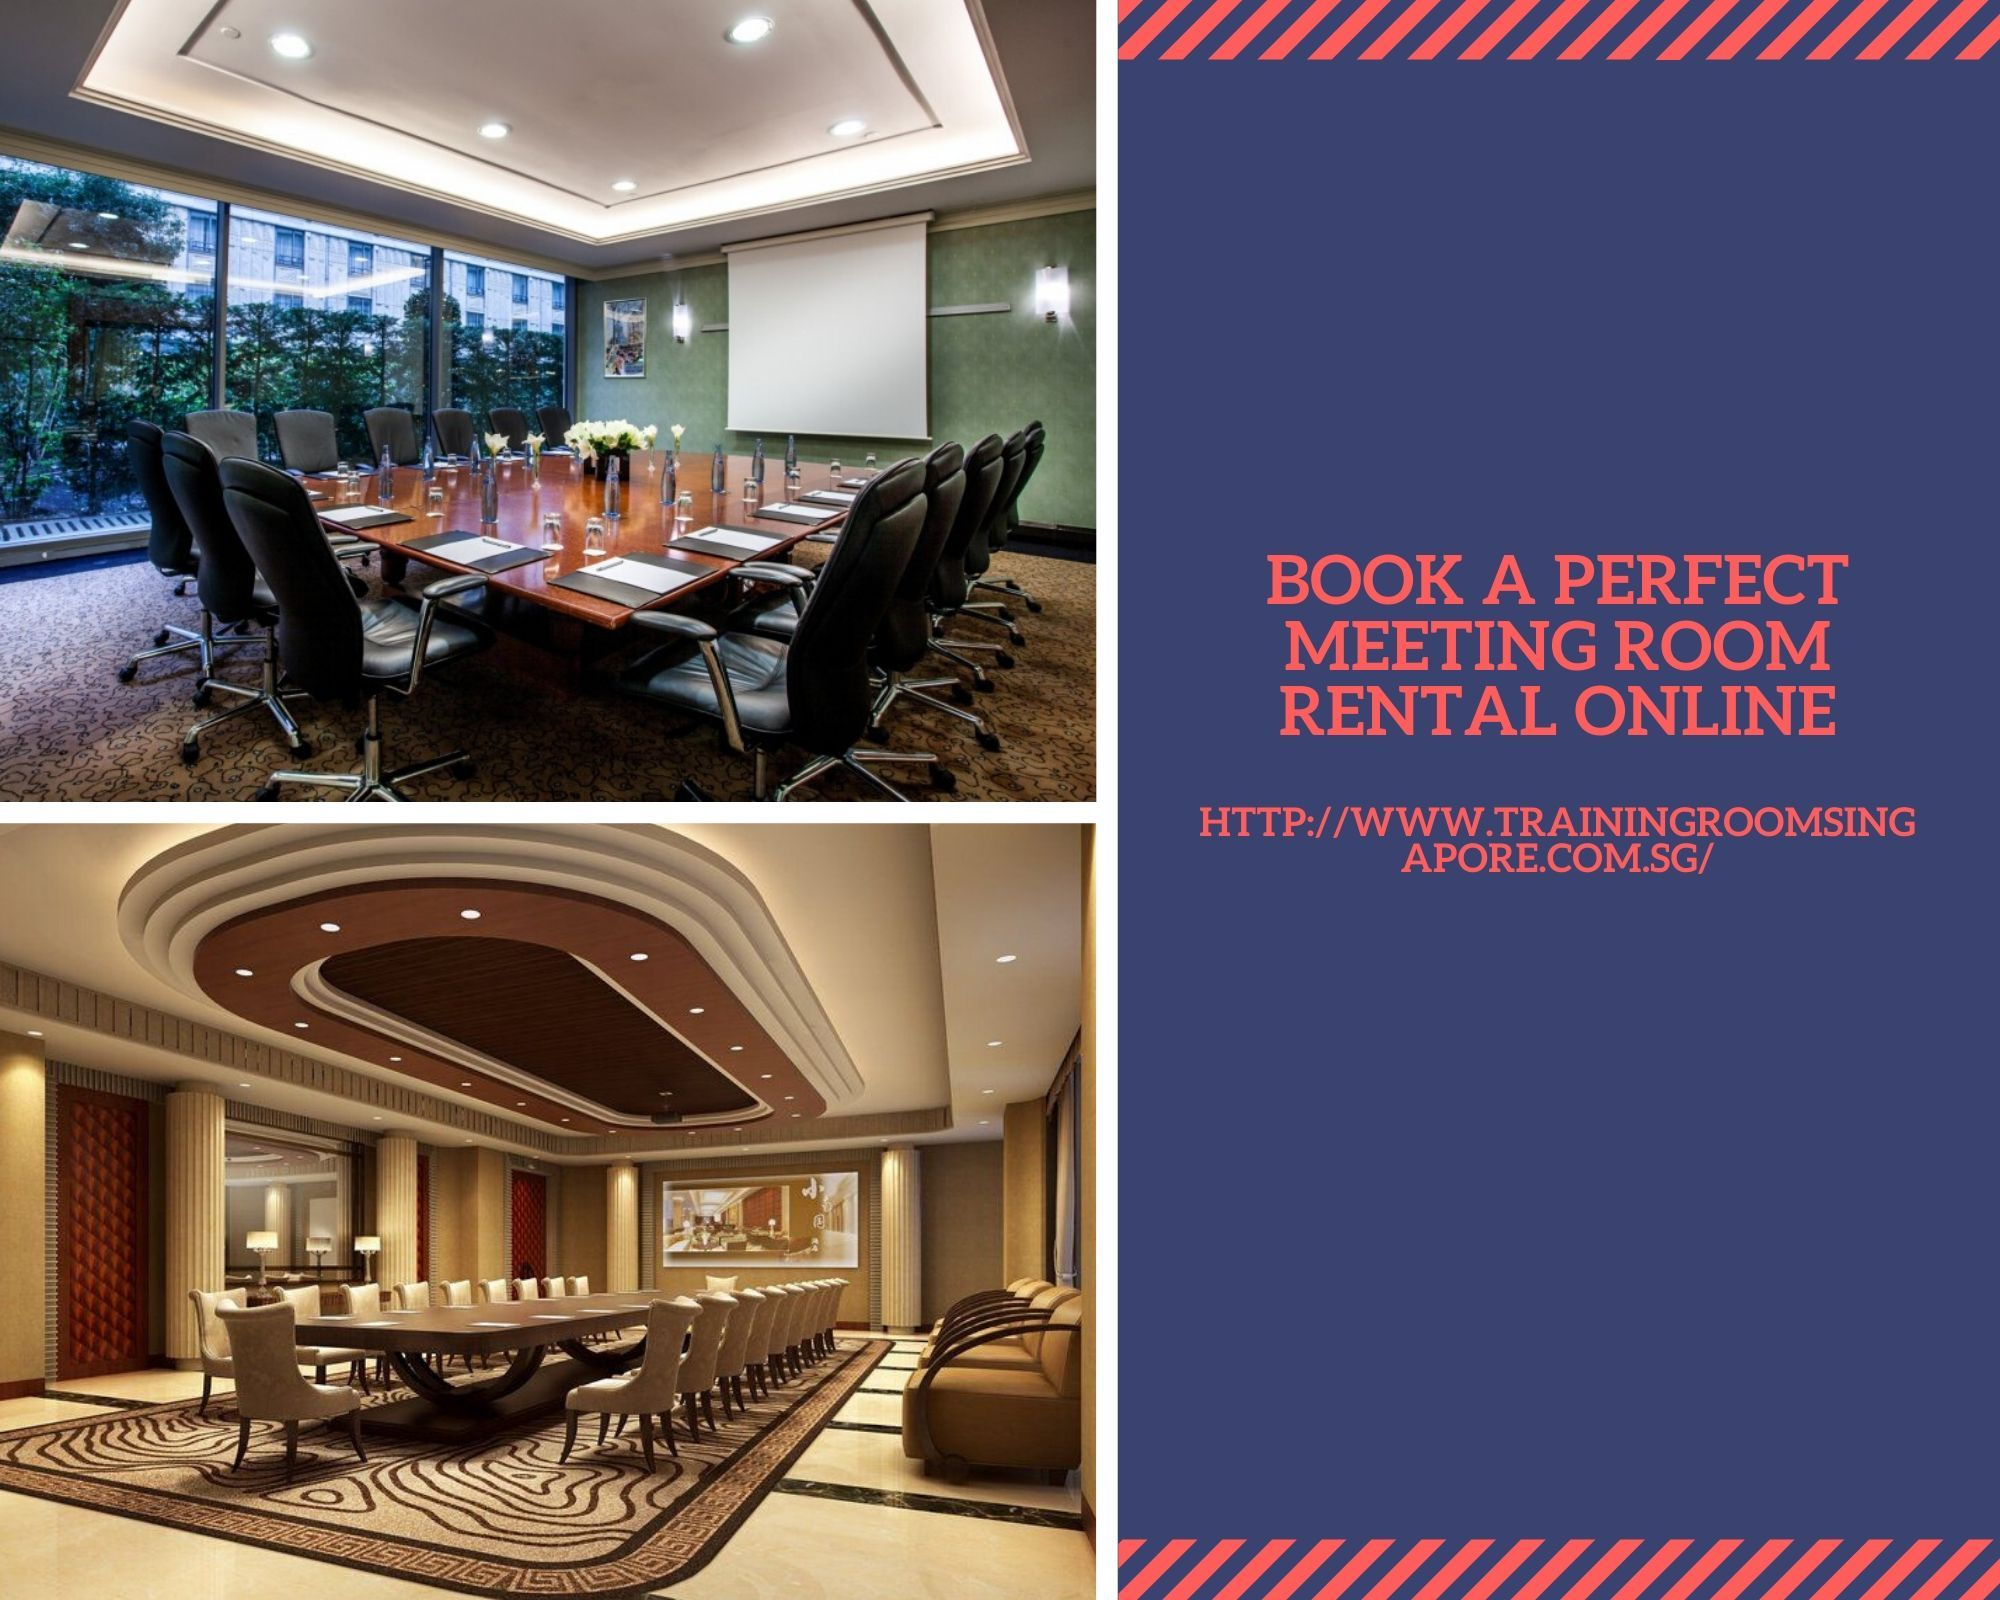 Home in 2020 with images meeting room rental hotel linen